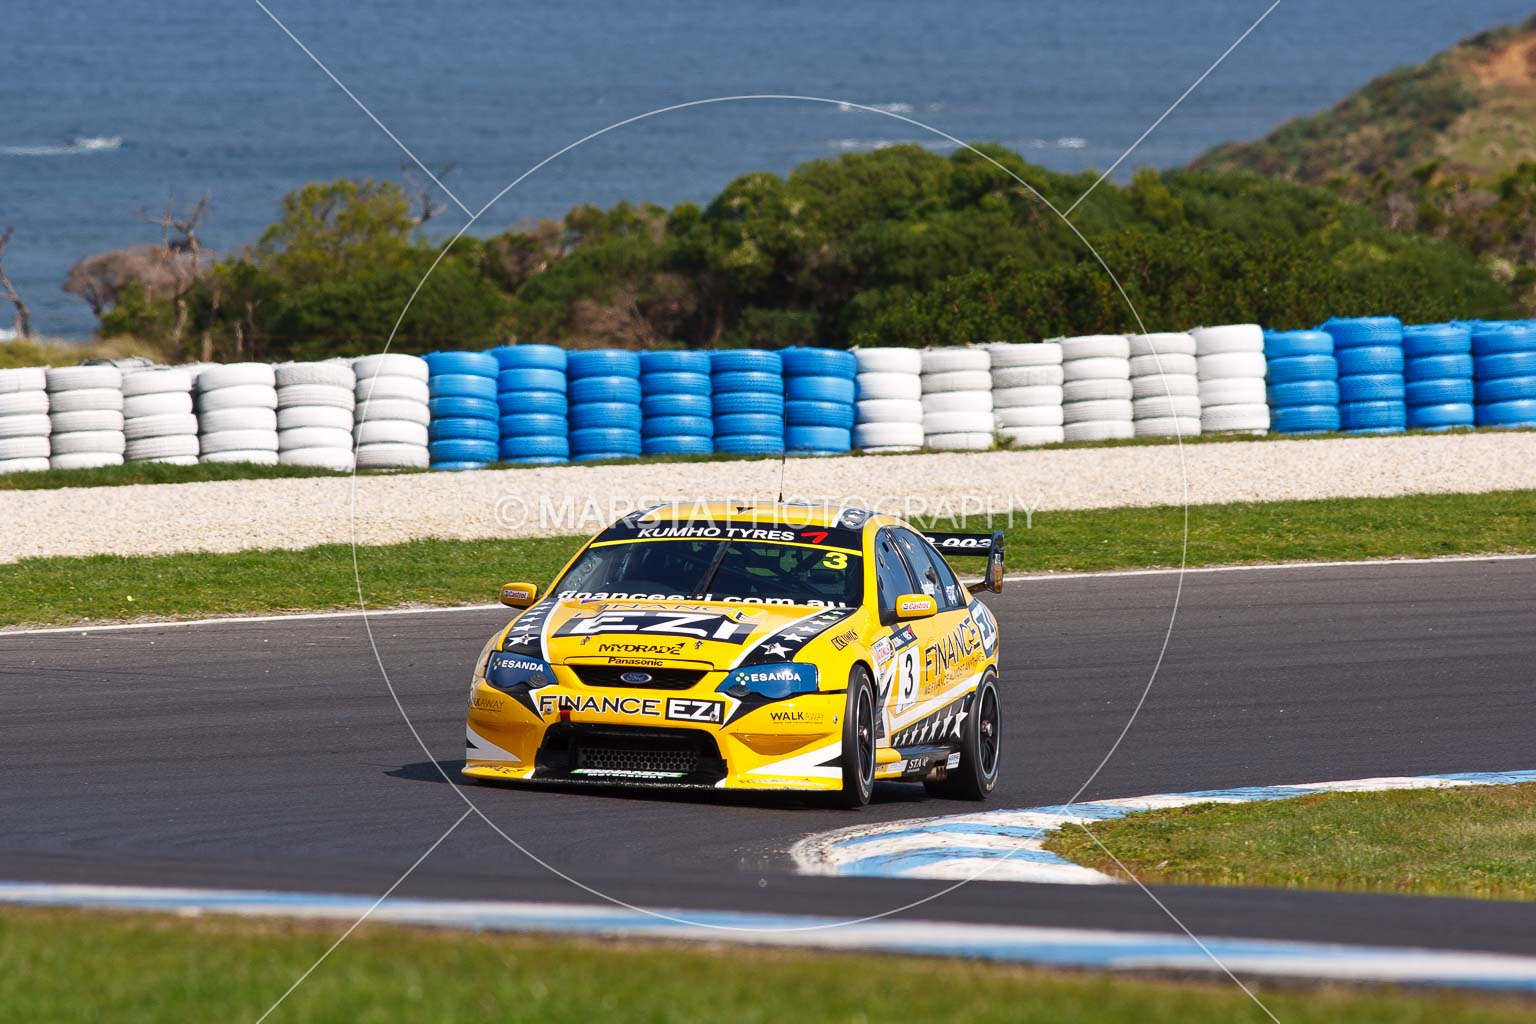 (3);23 September 2012;3;Australia;Fernandez Motorsport;Ford Falcon BA;Josh Hunter;Phillip Island;Shannons Nationals;V8 Touring Cars;VIC;Victoria;auto;motorsport;racing;super telephoto